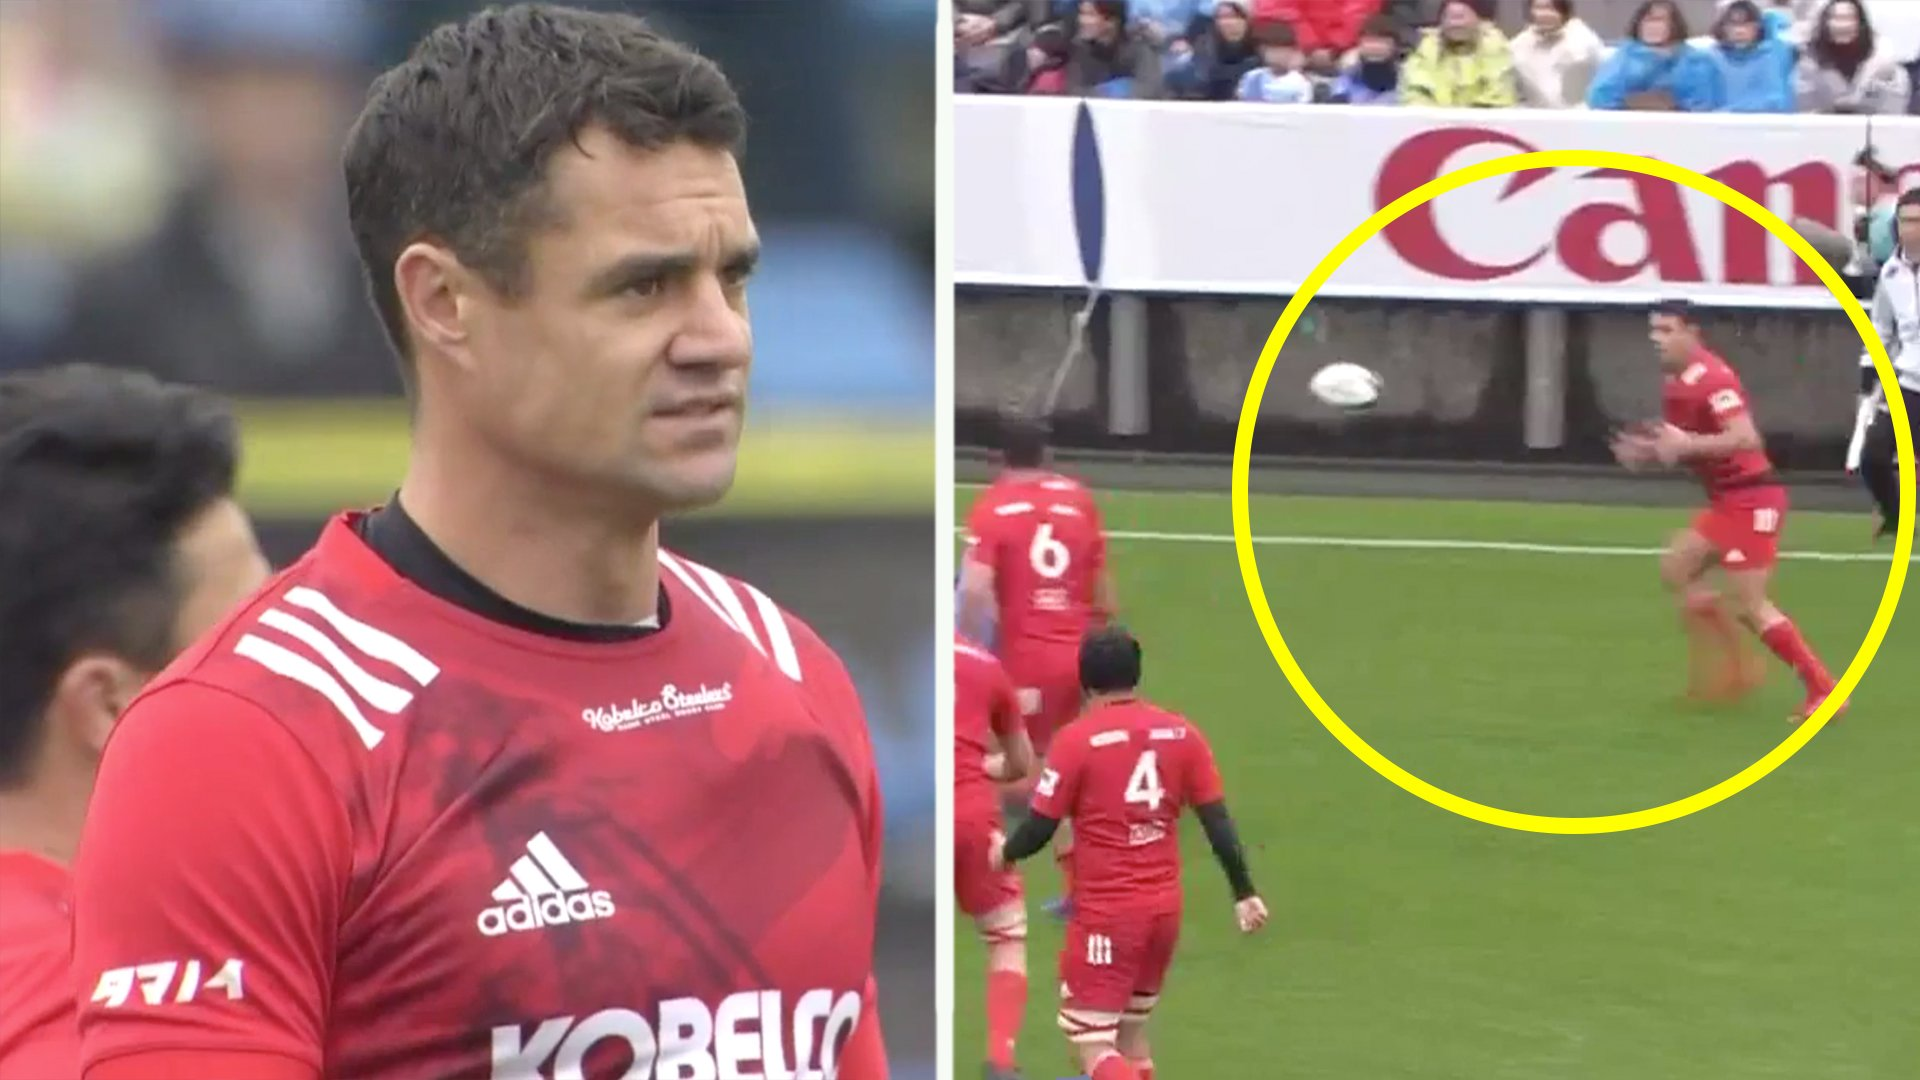 Rugby legend Dan Carter is hung out to dry by his team yet somehow still manages to do this